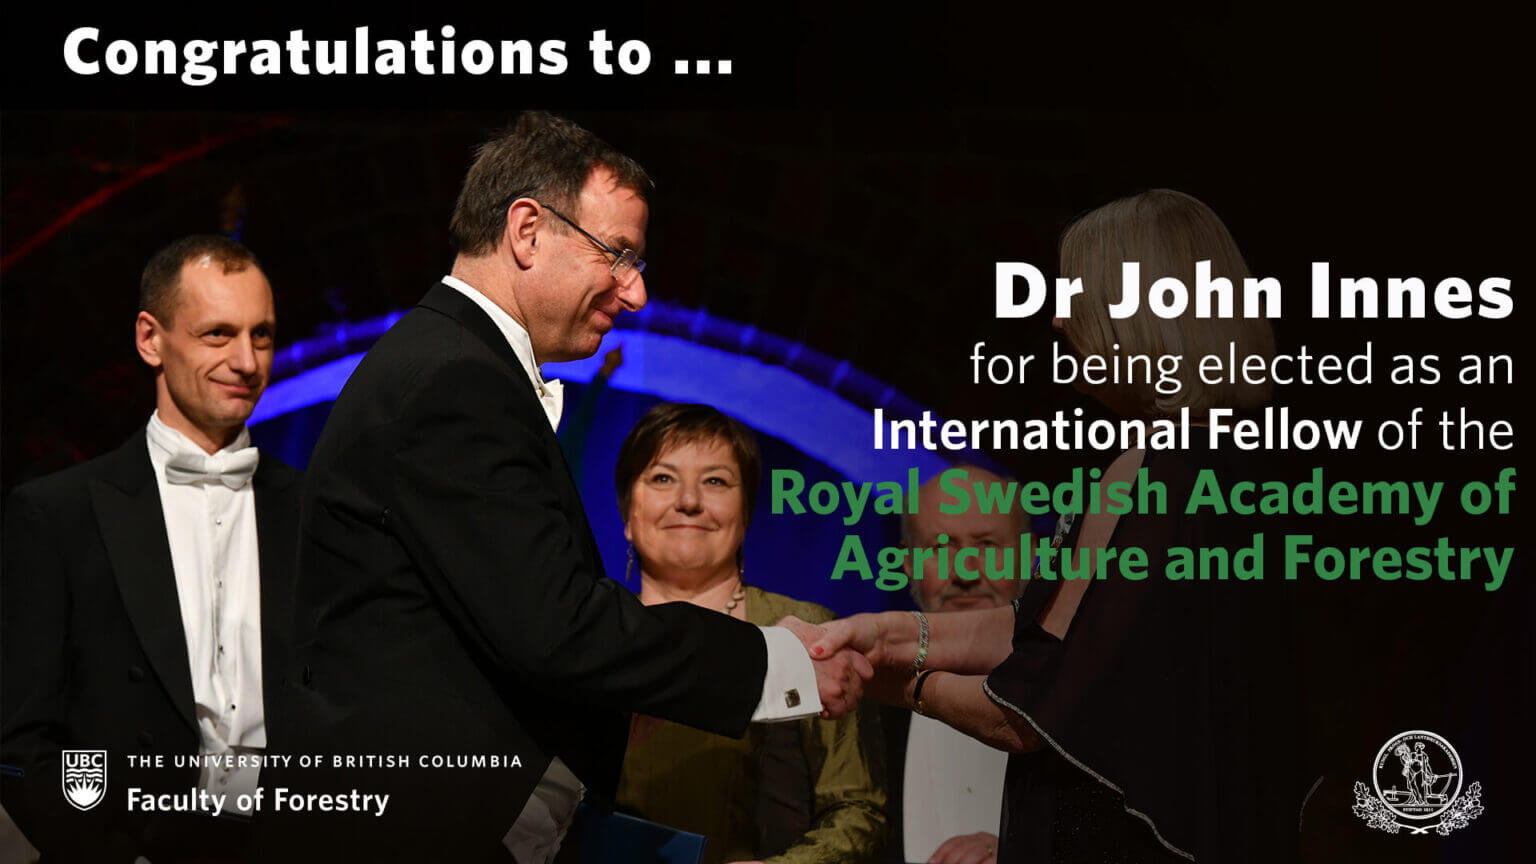 Congratulations to John Innes for being elected as a Fellow of the Royal Swedish Academy of Agriculture and Forestry